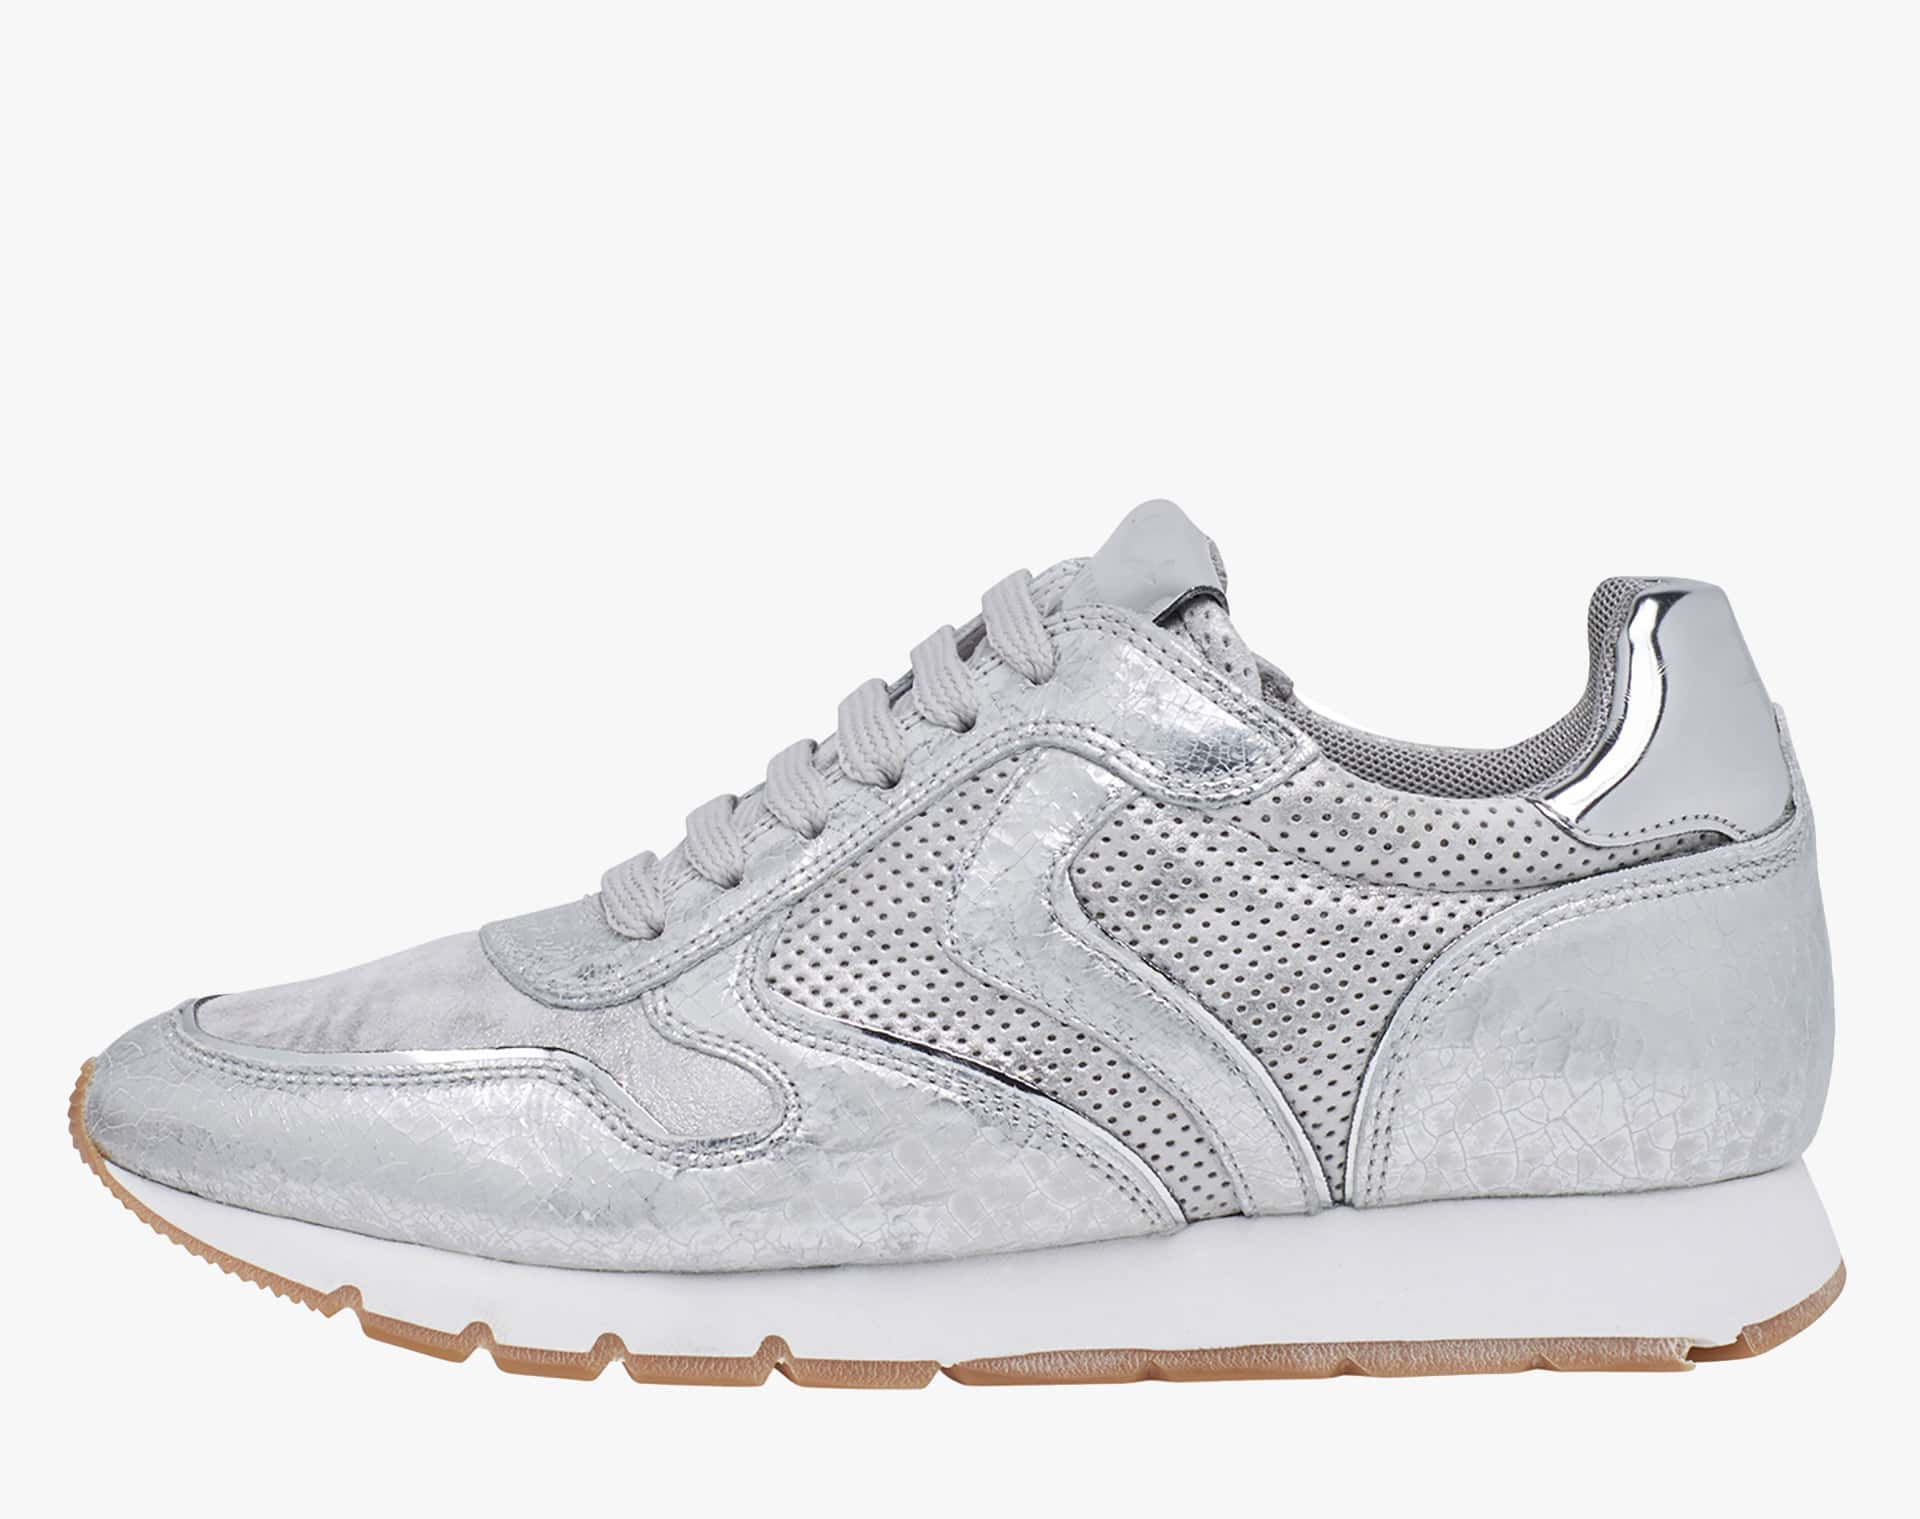 JULIA - Leather sneakers - Silver